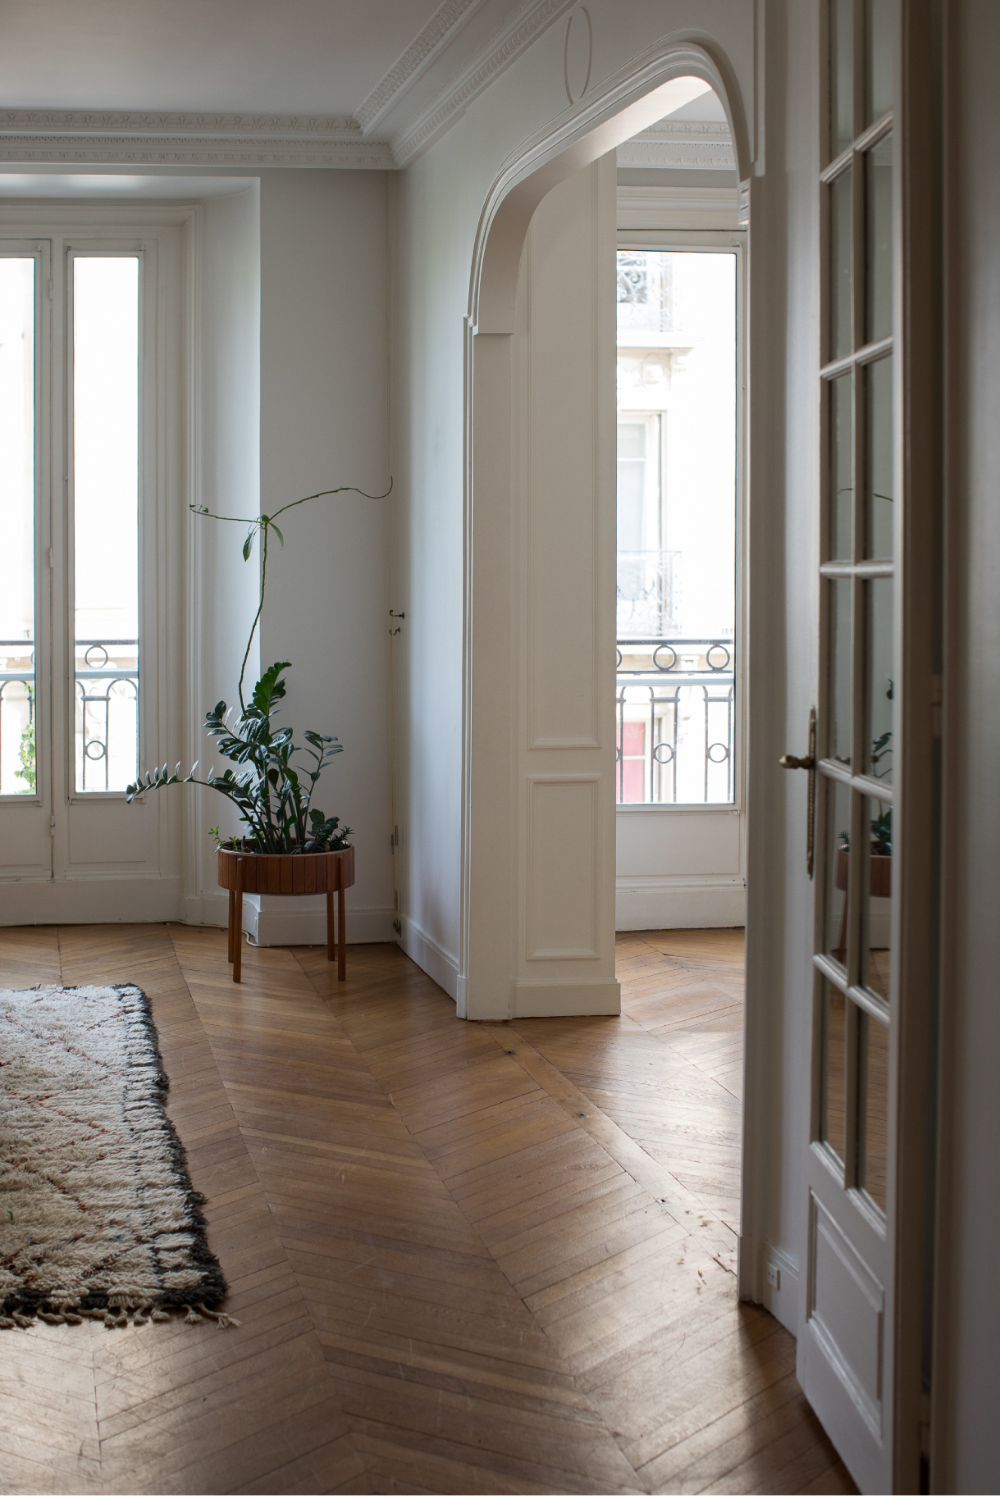 One of my favorite home tours: a beautiful apartment in the heart of Paris. The natural lighting and those herringbone floors...